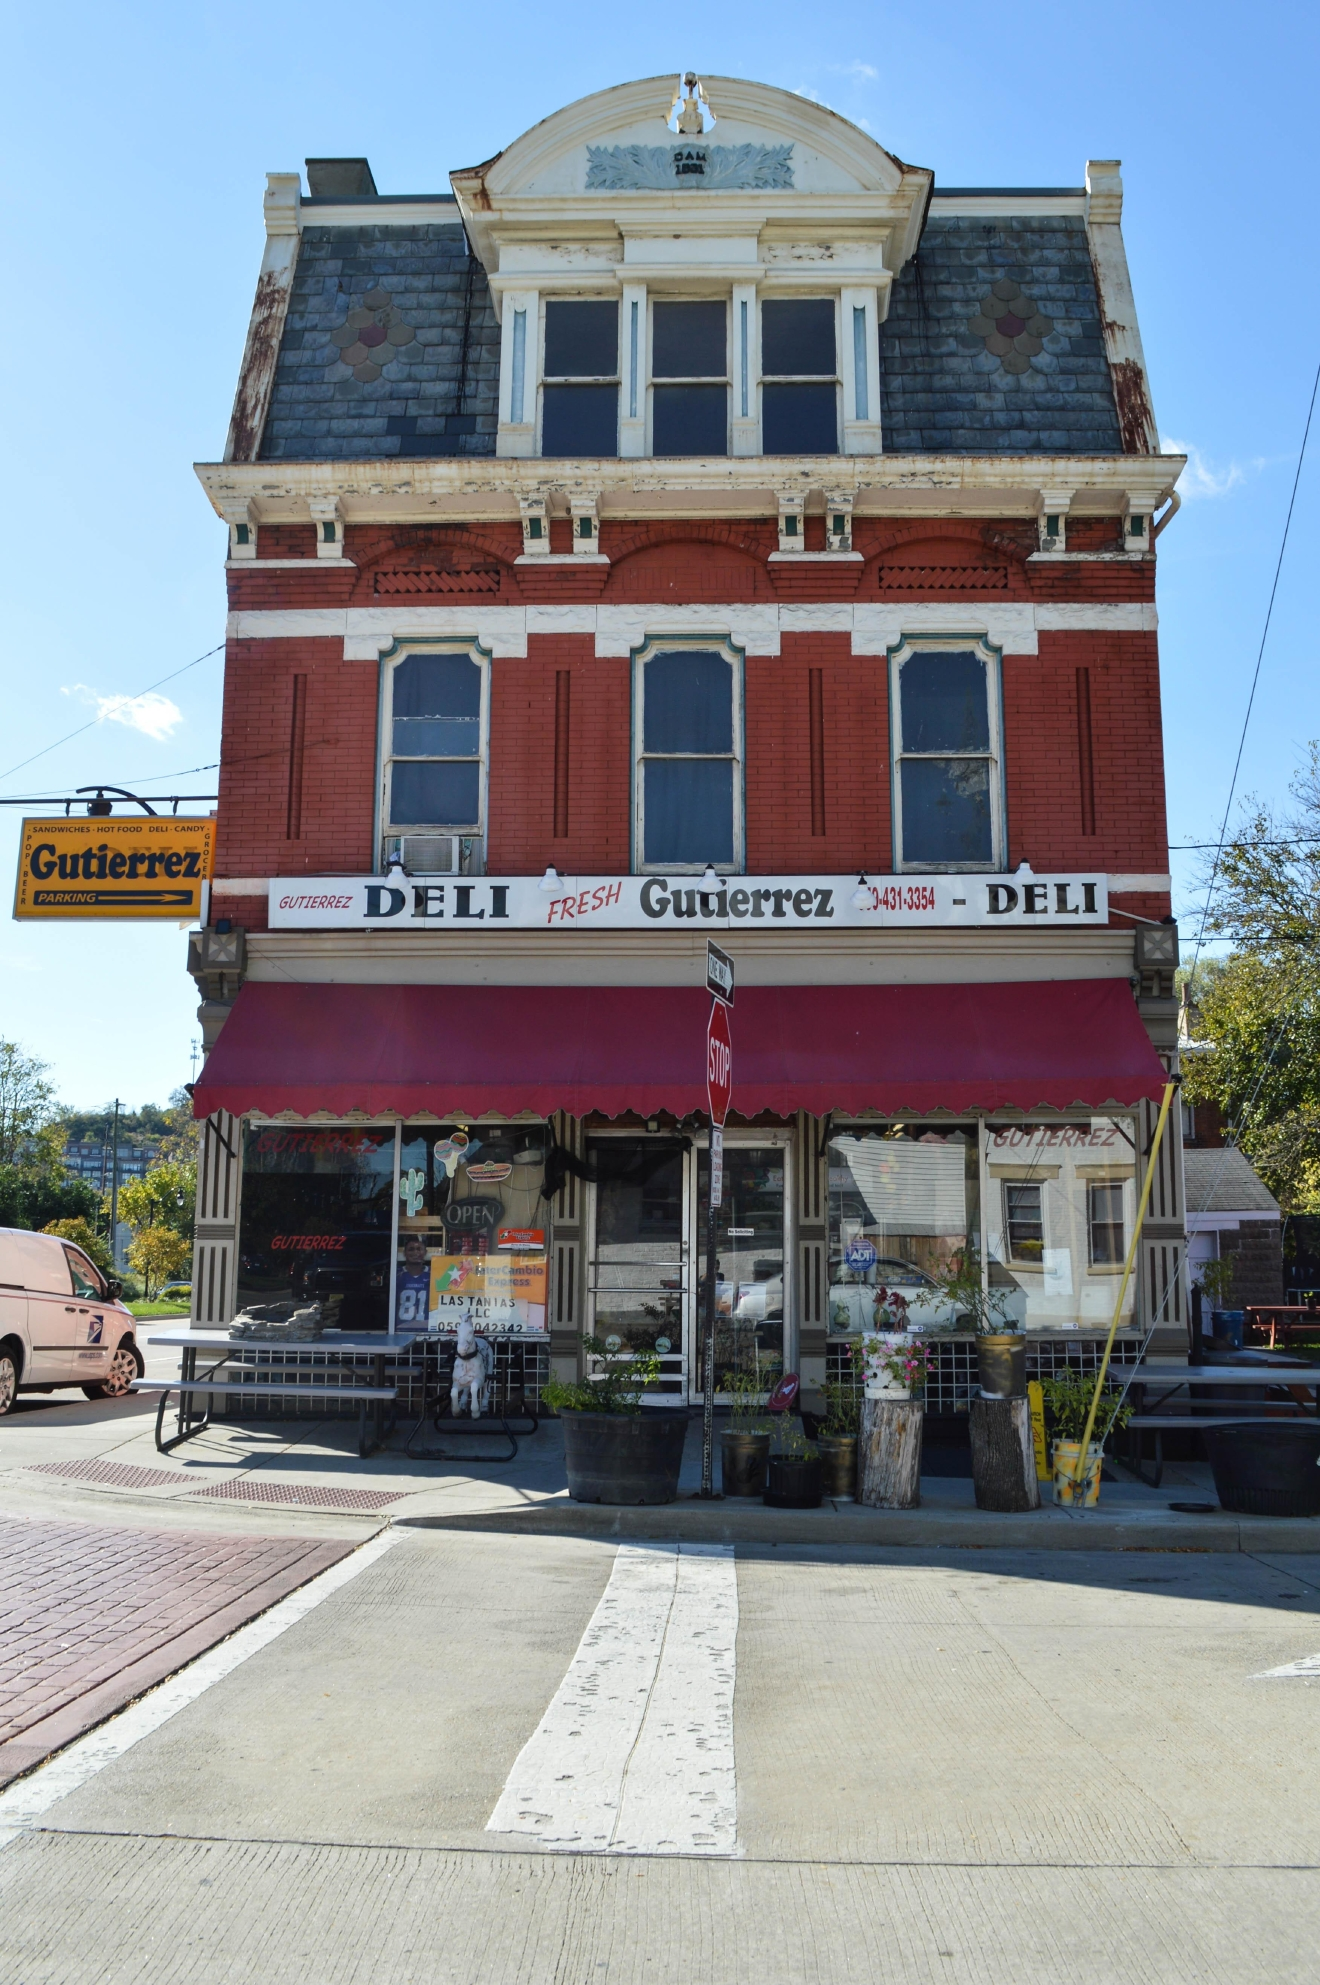 Gutierrez Deli sells Hispanic groceries and Mexican food that's made-to-order. It is located at 1131 Lee Street, Covington, KY 41011. / Image: Liliana Dillingham / Published: 10.30.16